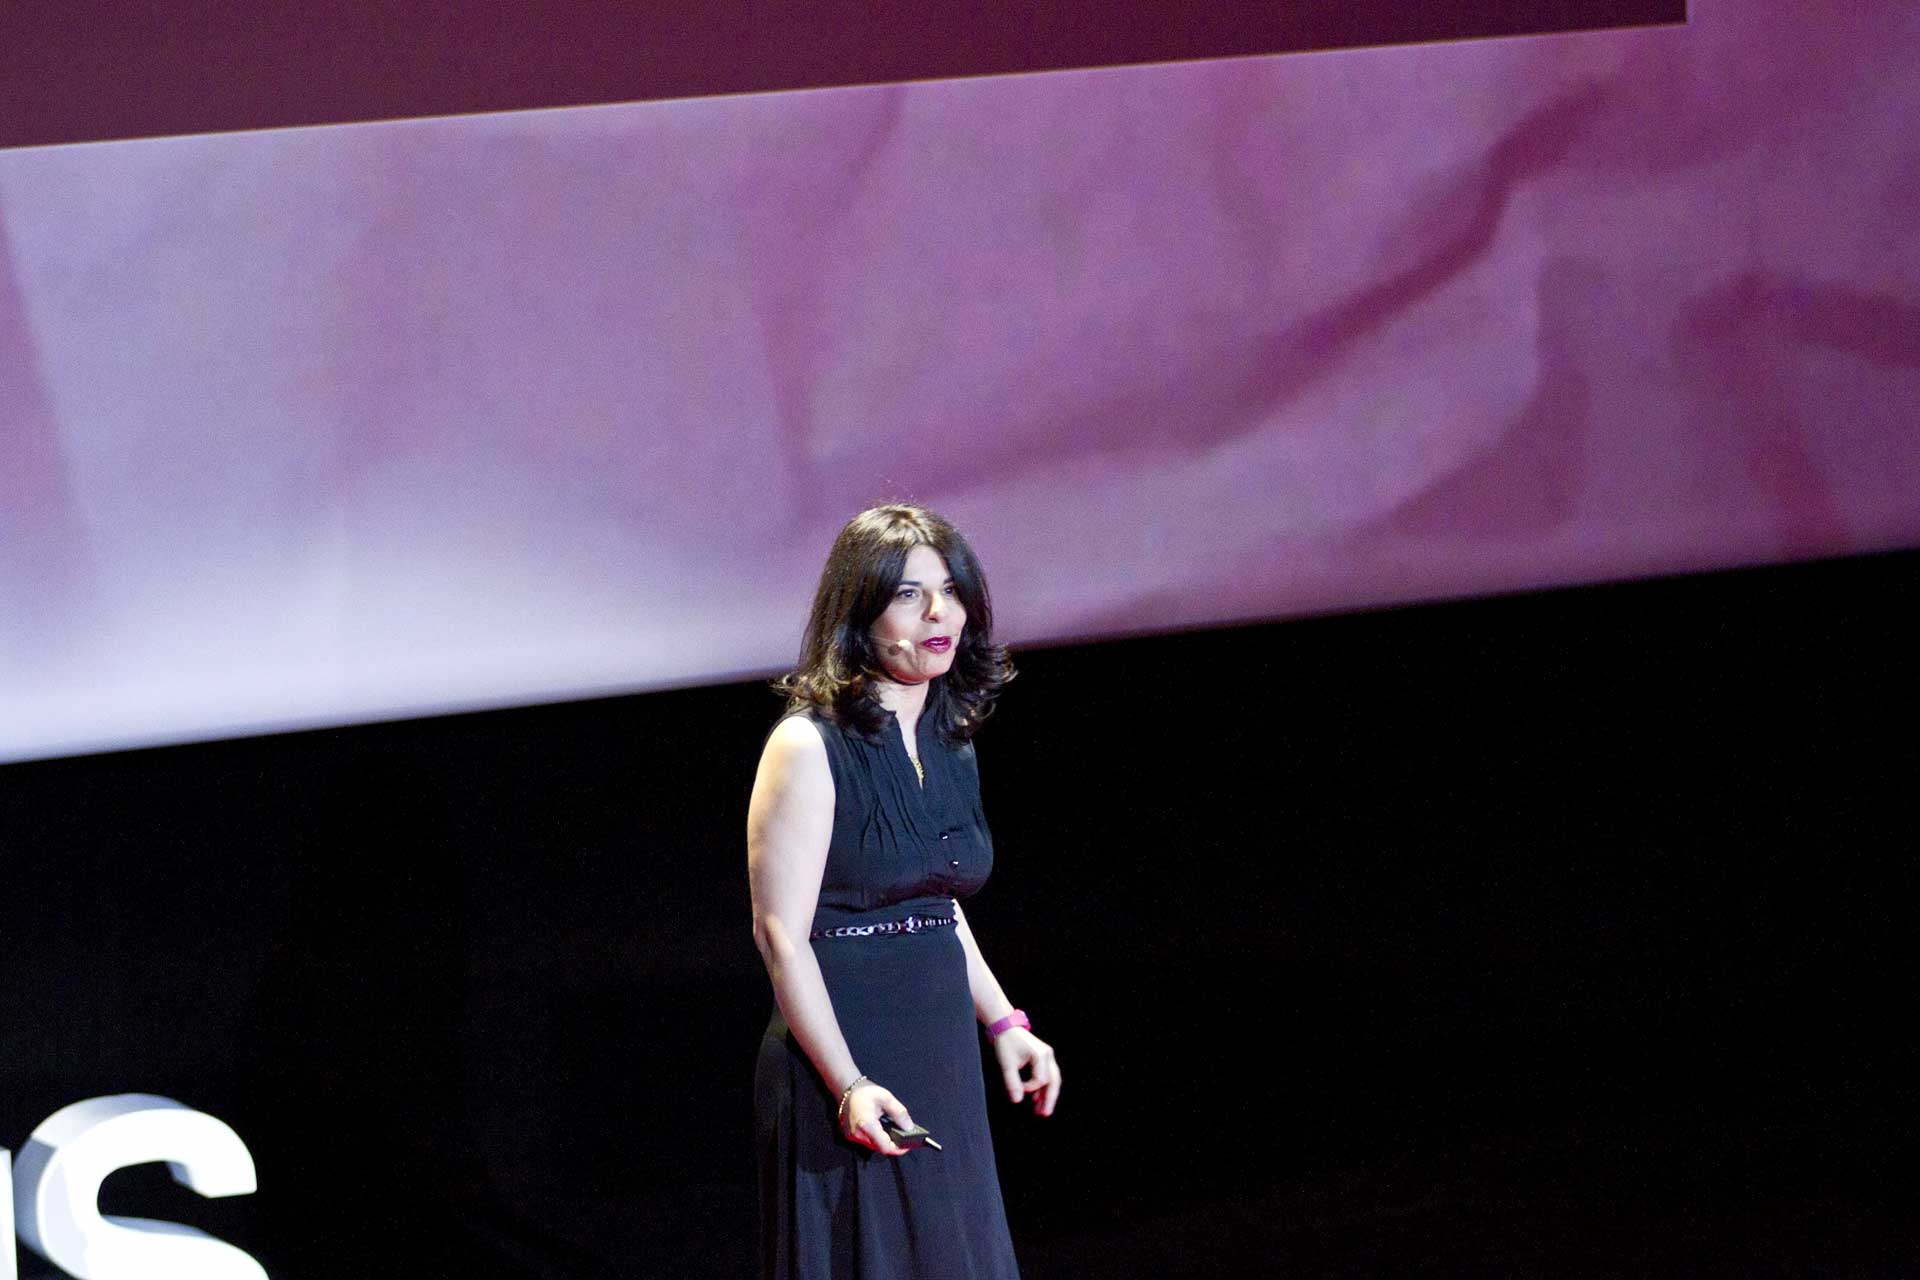 conference-TEDxParis-2013-17.jpg